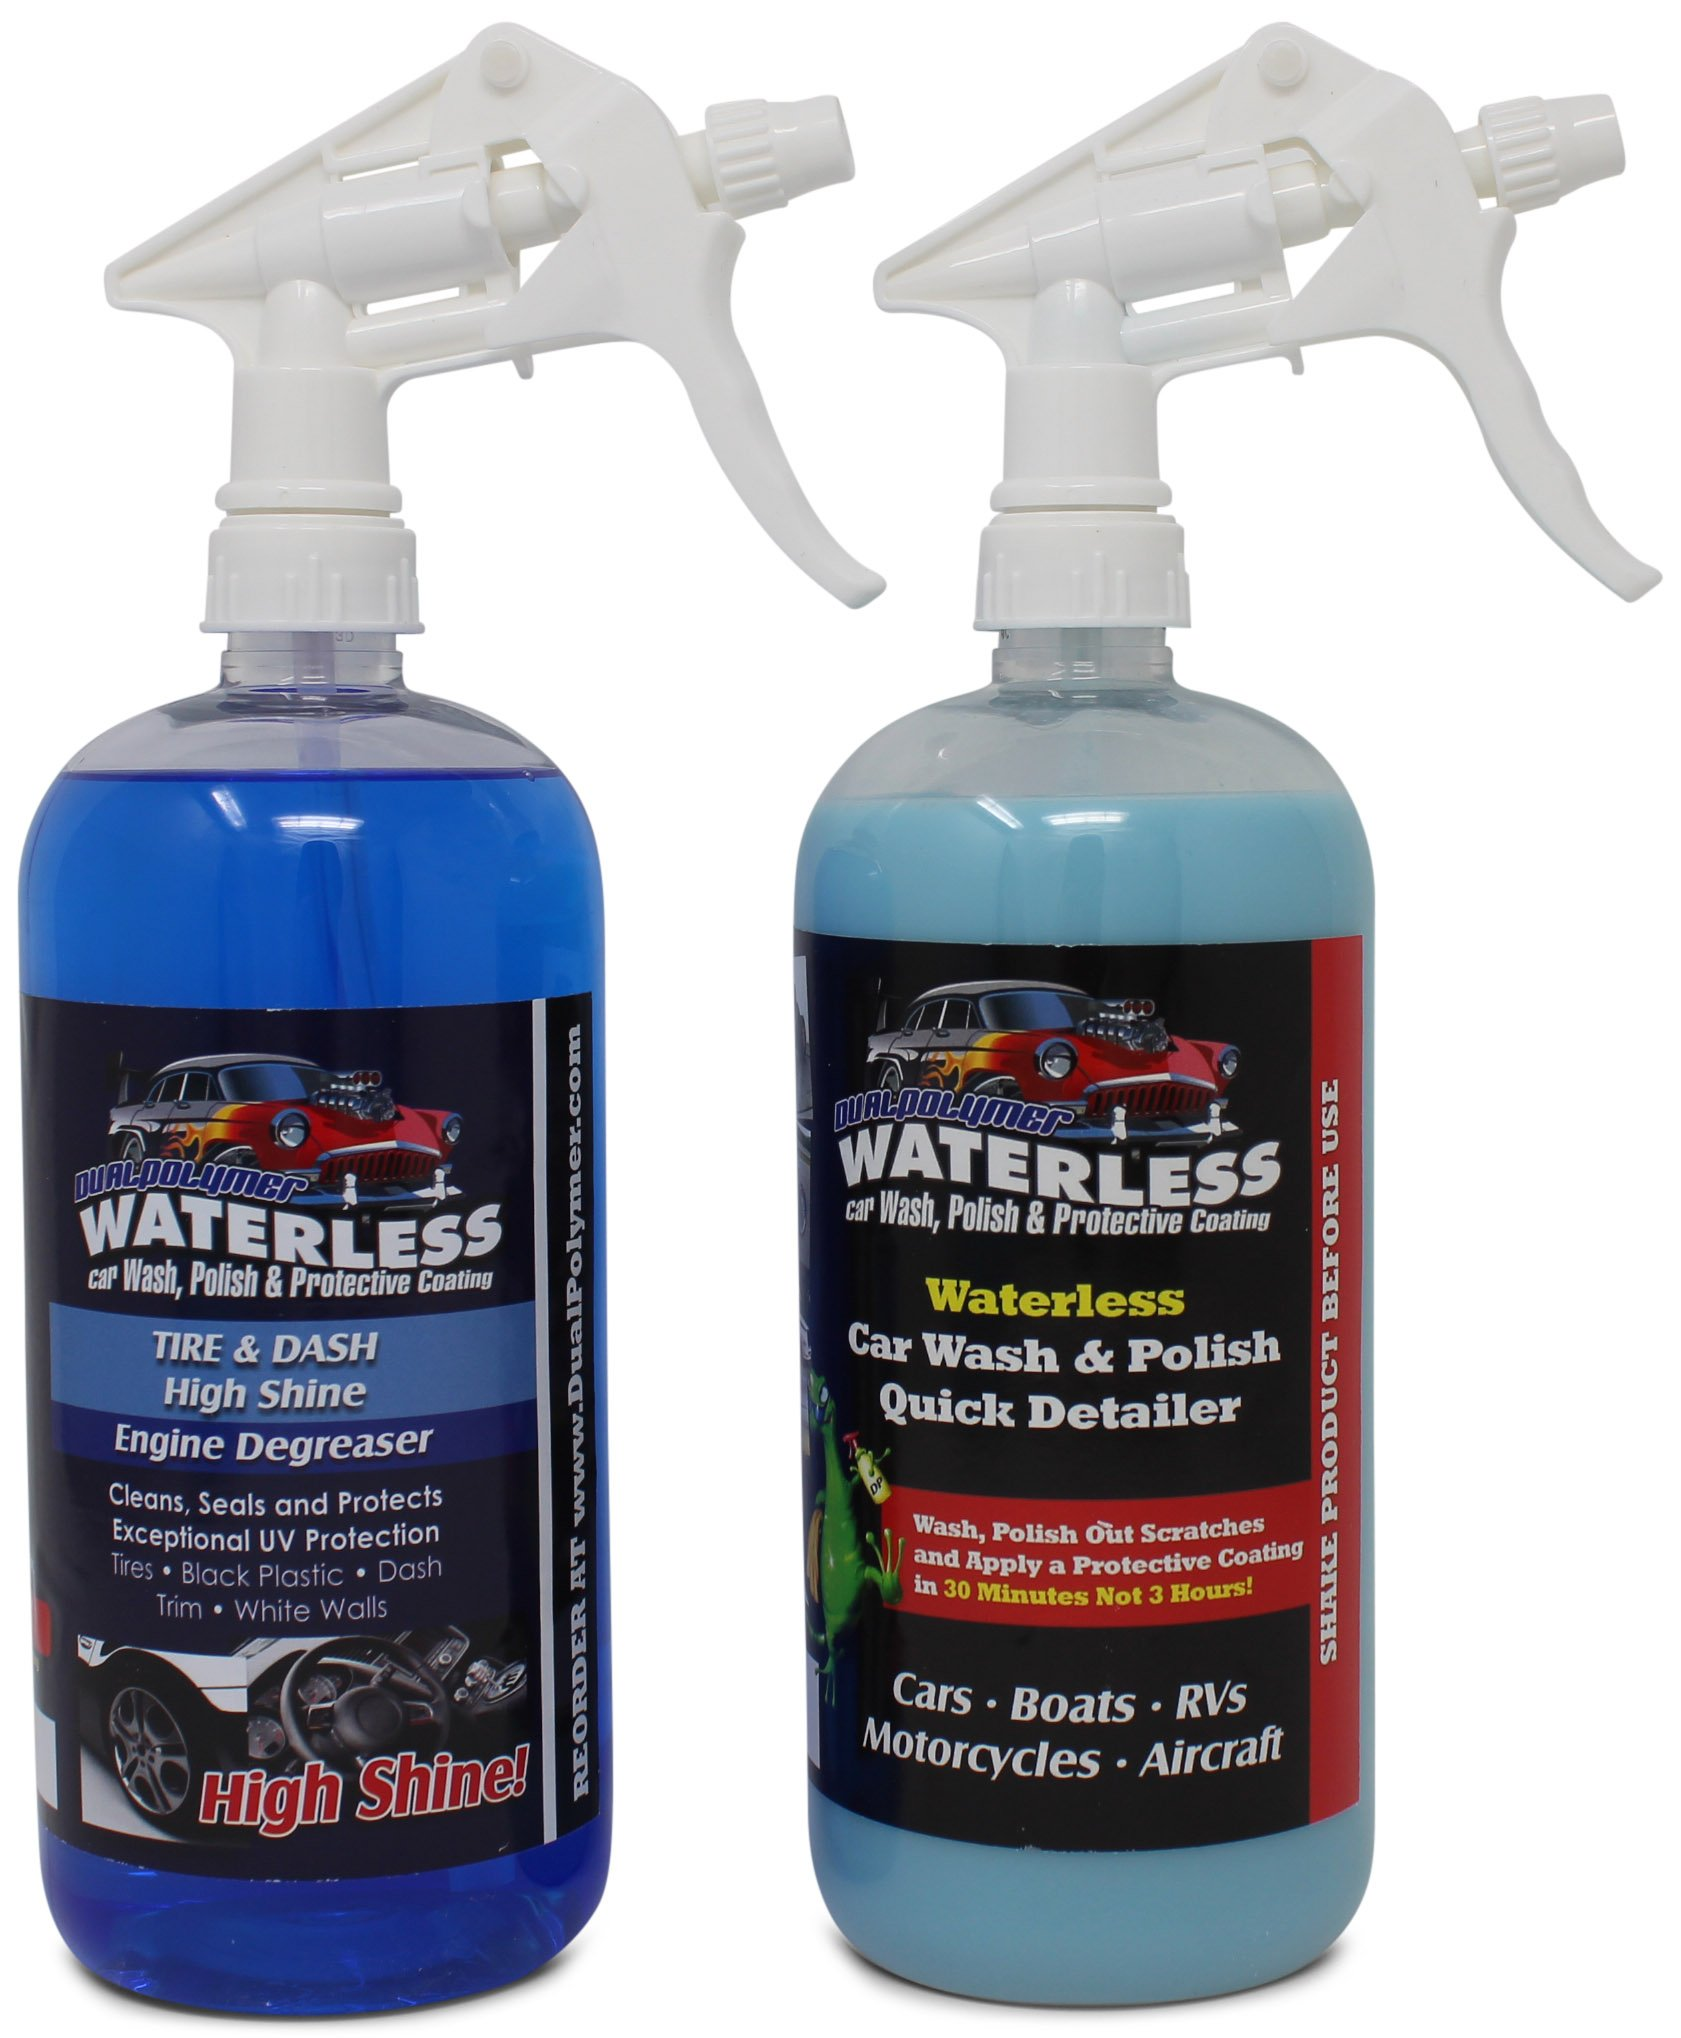 DualPolymer Waterless Car Wash and Tire and Trim Shine Full Car Care Detail Kit   Made in USA   Microfiber Towels Included